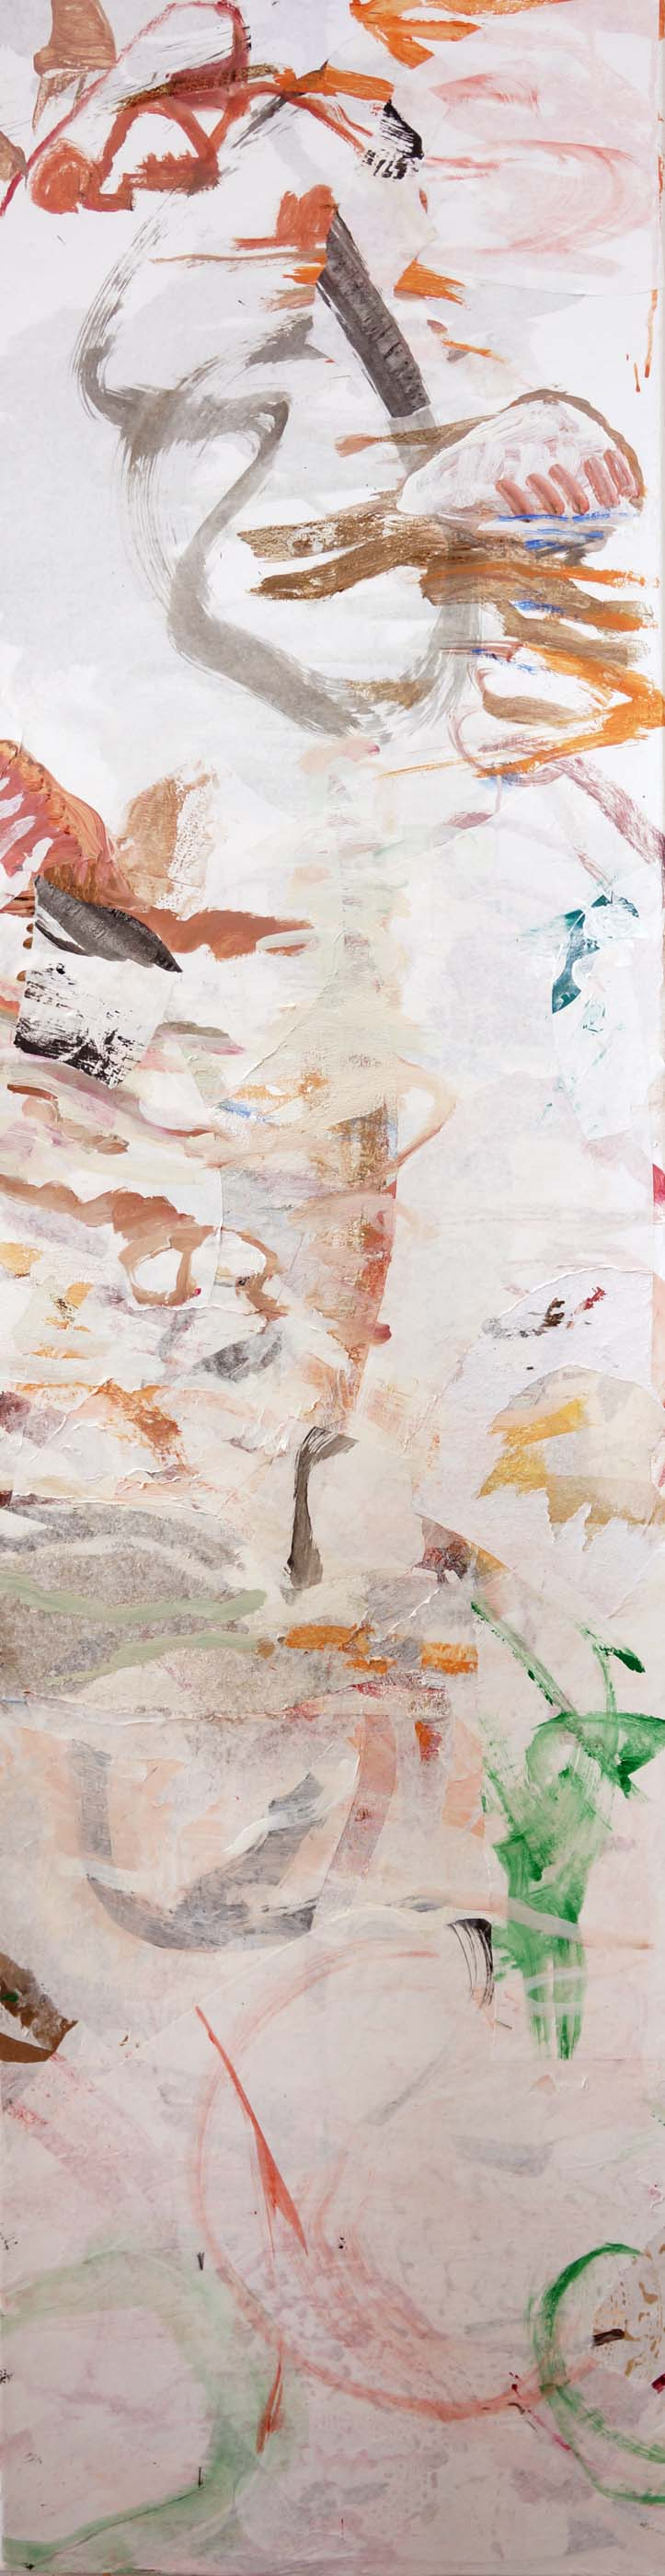 "DAY 3:  bada creek   72X18""  acrylic & collaged paper on canvas"